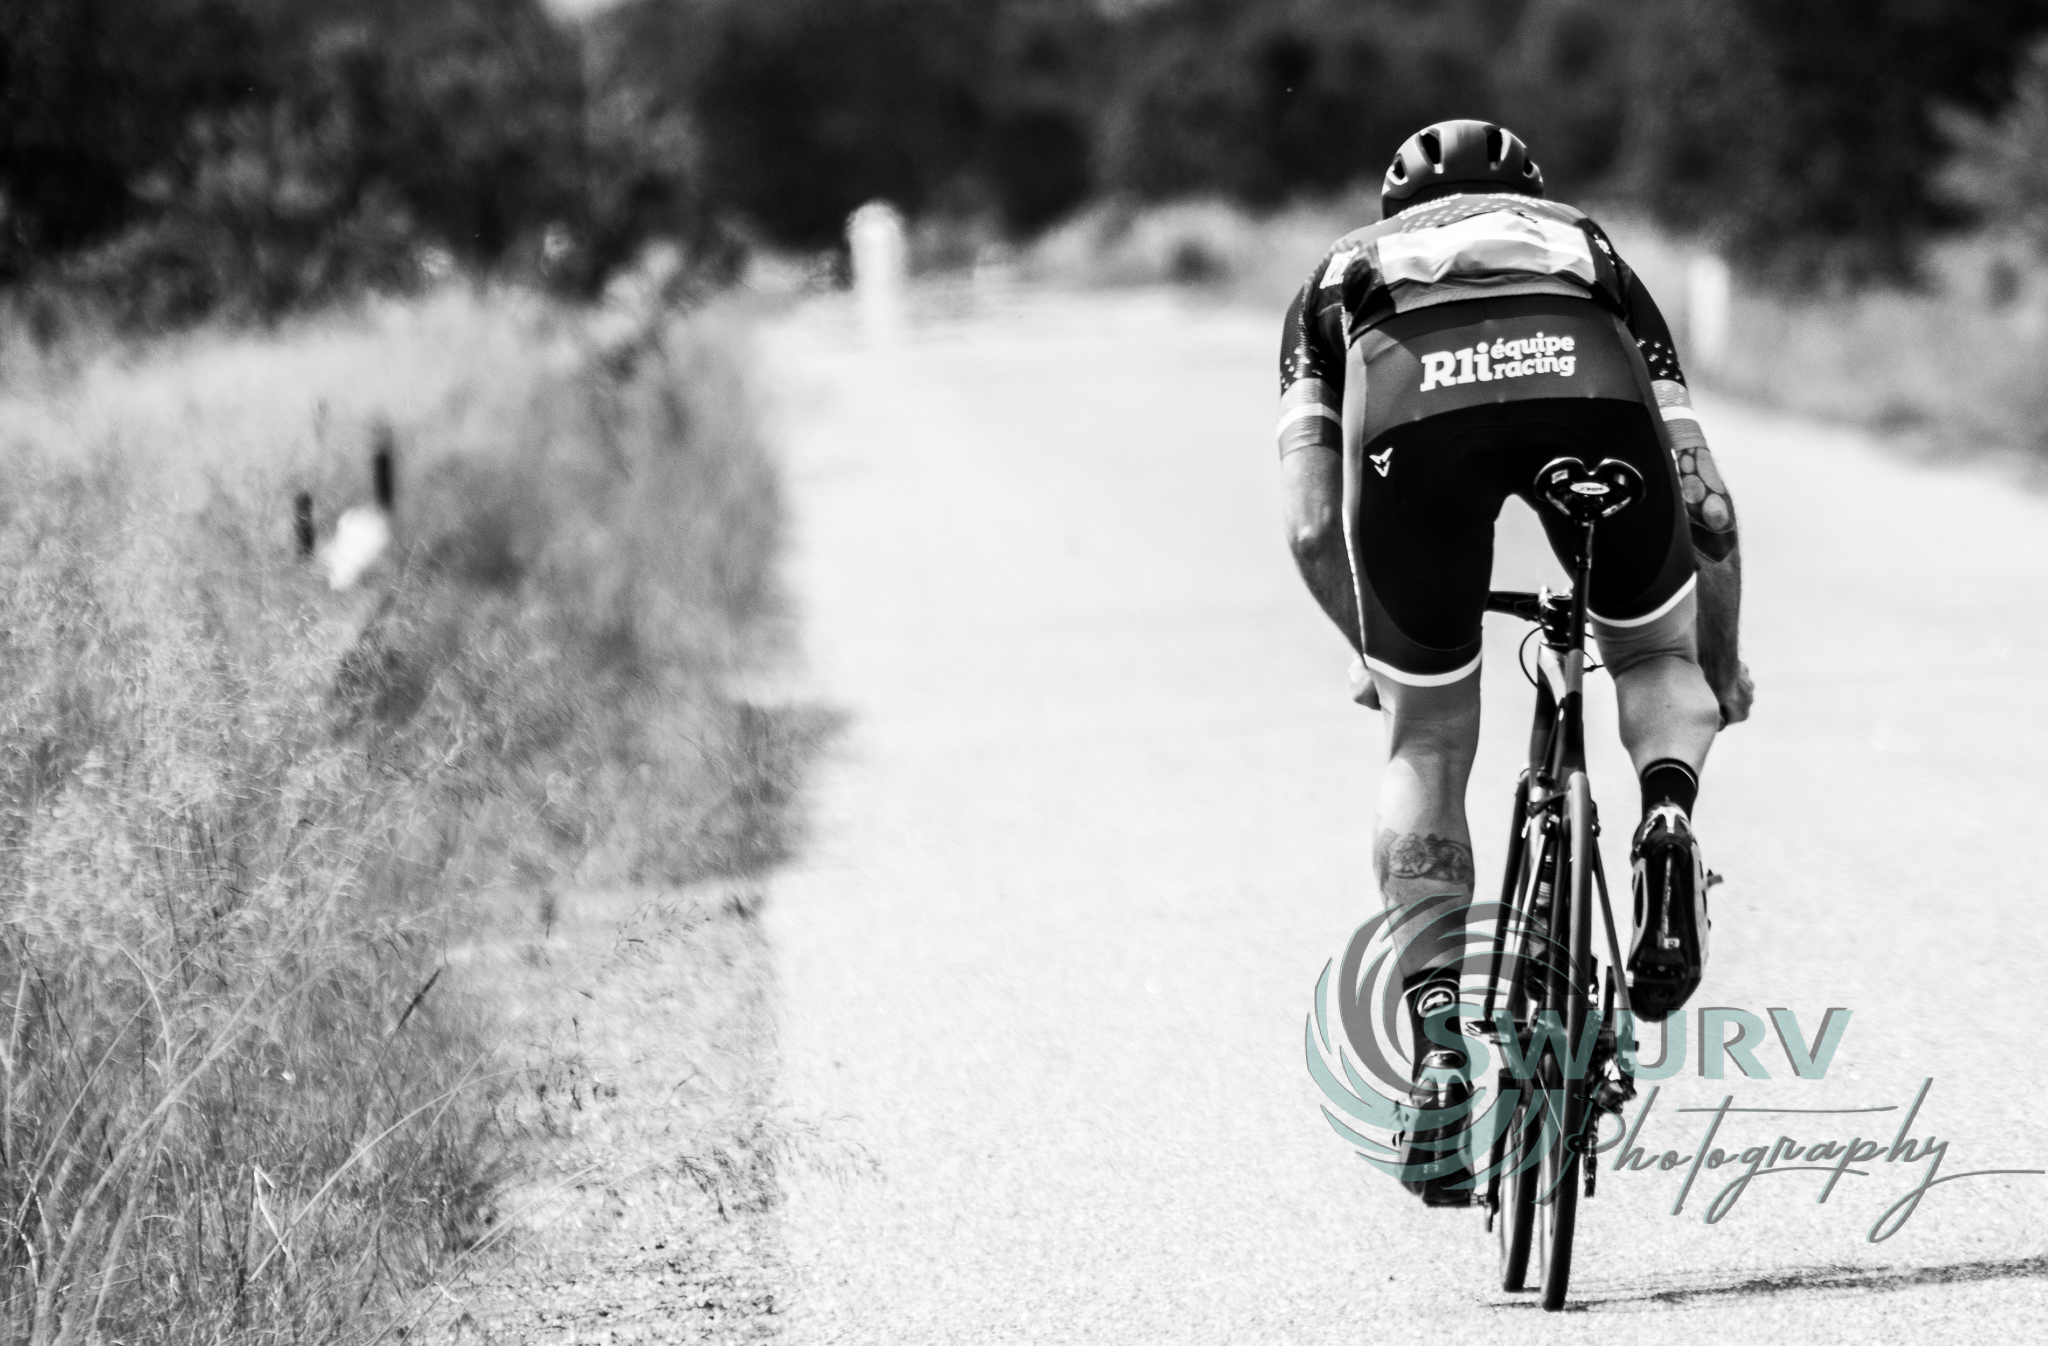 Cycling photography by Swruv